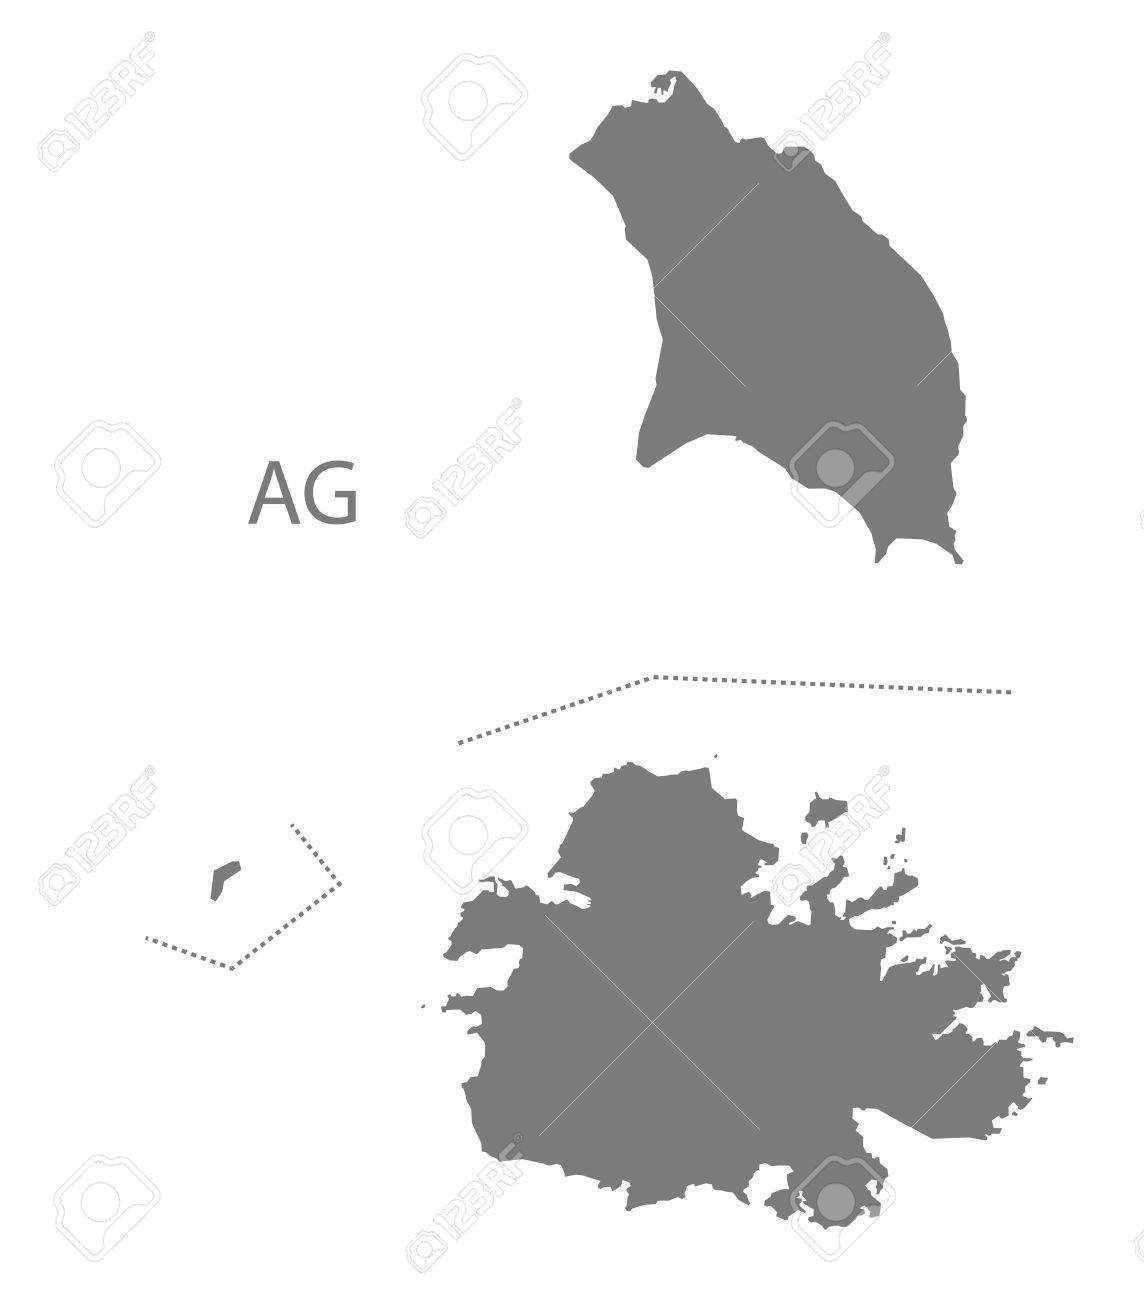 Antigua And Barbuda Map In Gray Royalty Free Cliparts Vectors And